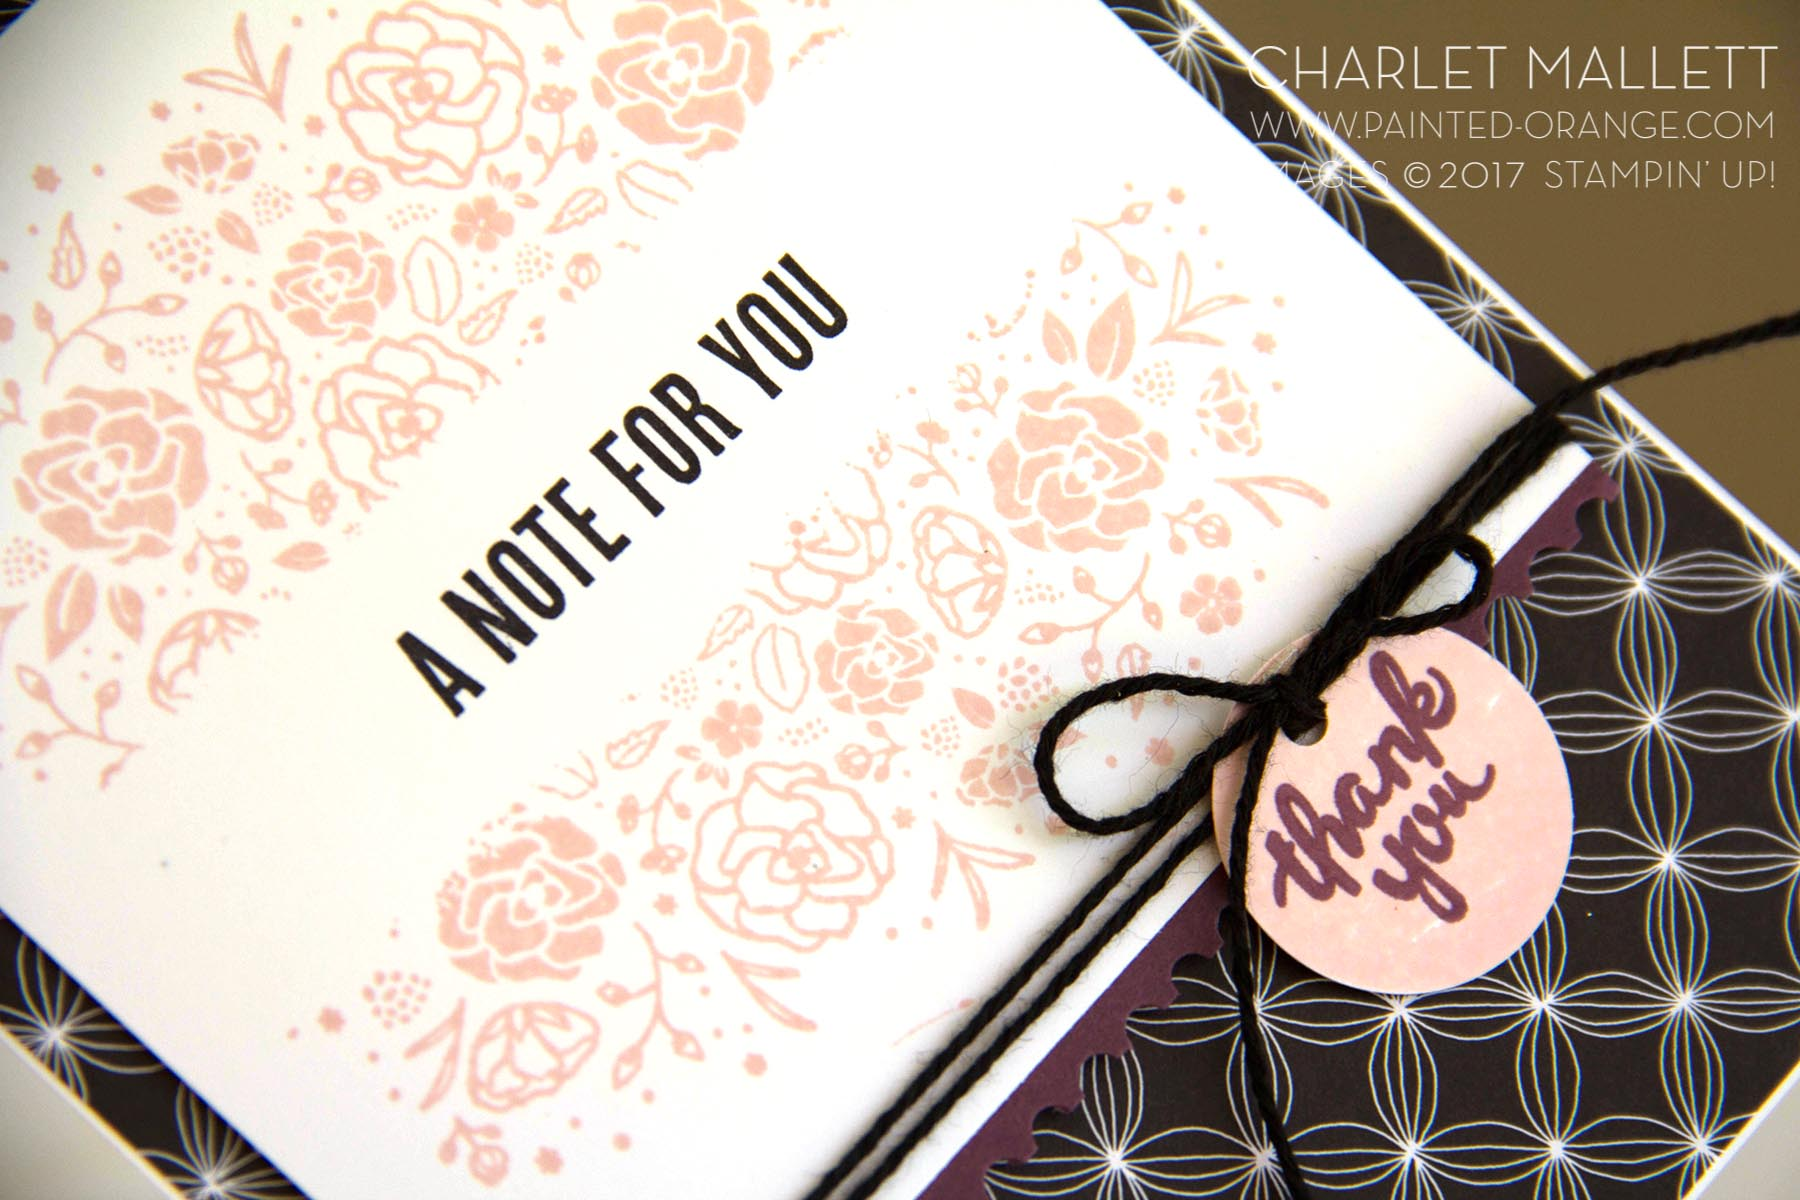 Wood Words - A Note For You card, Charlet Mallett - Stampin' Up! Use washi tape to mask out areas you want to omit when stamping.